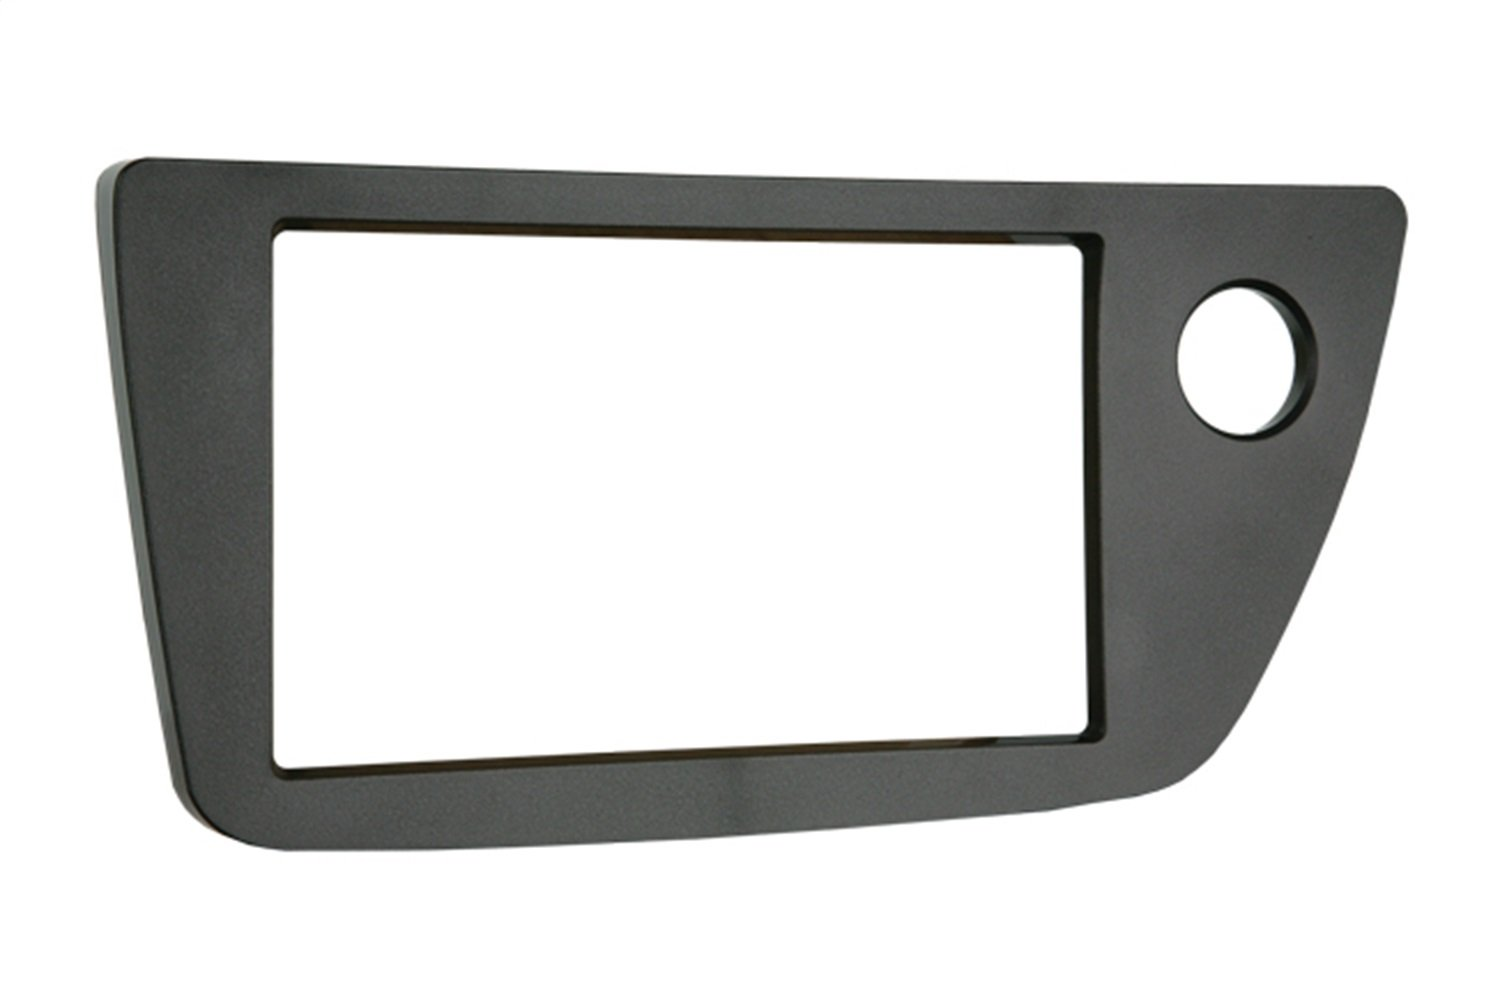 Metra 95-7867 Double DIN Installation Kit for 2002-2006 Acura RSX Vehicles (Black) Metra Electronics Corporation